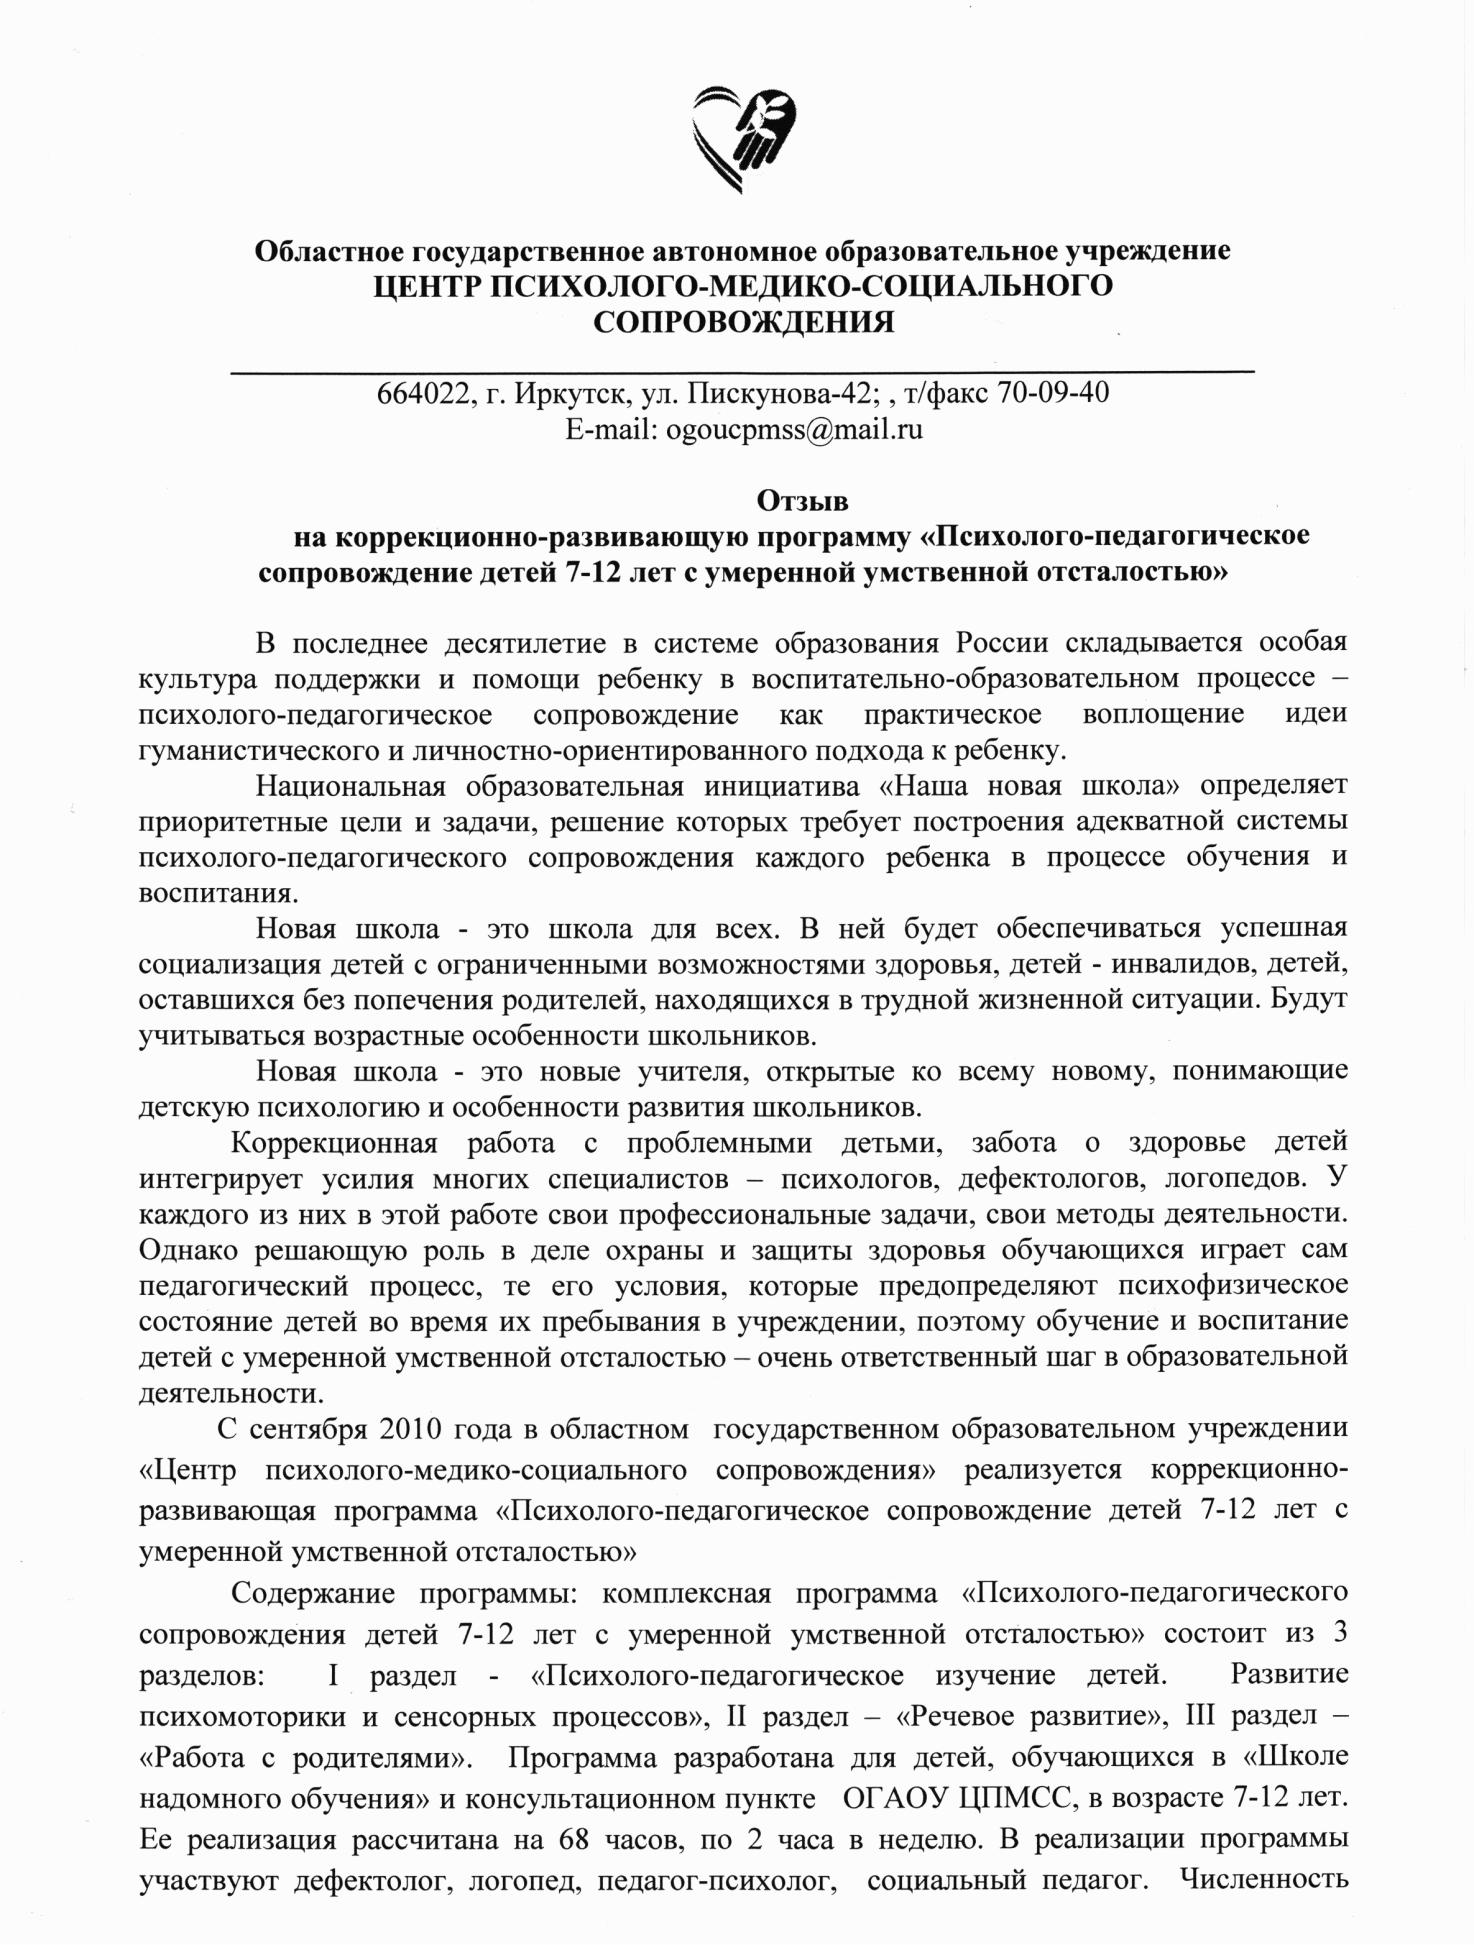 C:\Documents and Settings\Admin\Рабочий стол\7 - 0001.tif